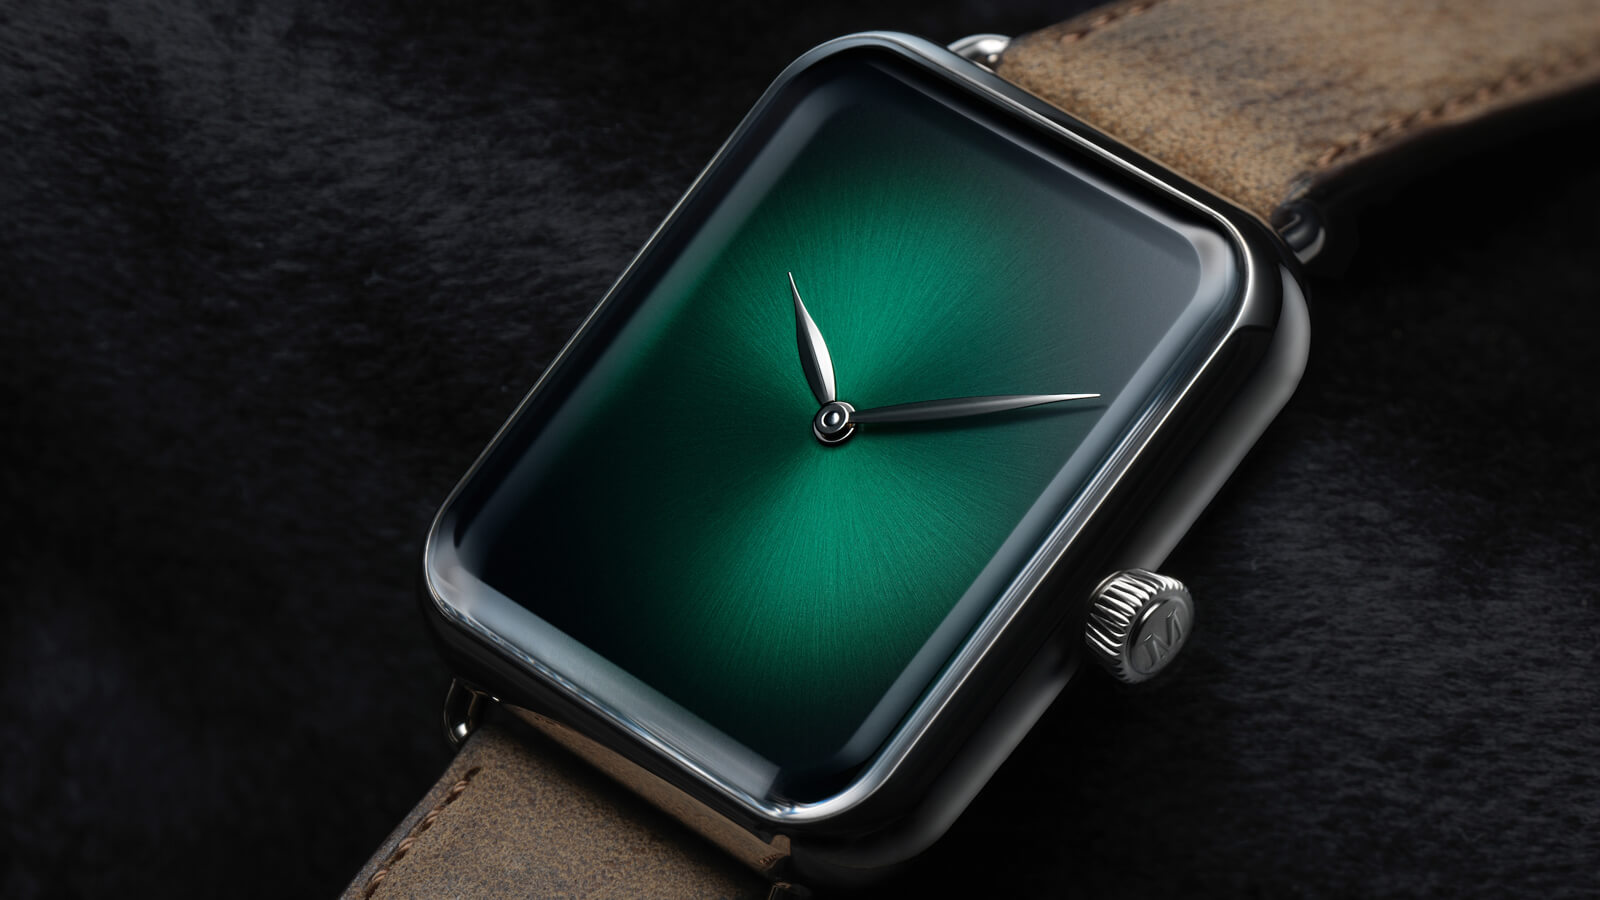 H. Moser Swiss Alp Watch Concept Cosmic Green featuring the hand-wound HMC 324 Manufacture calibre